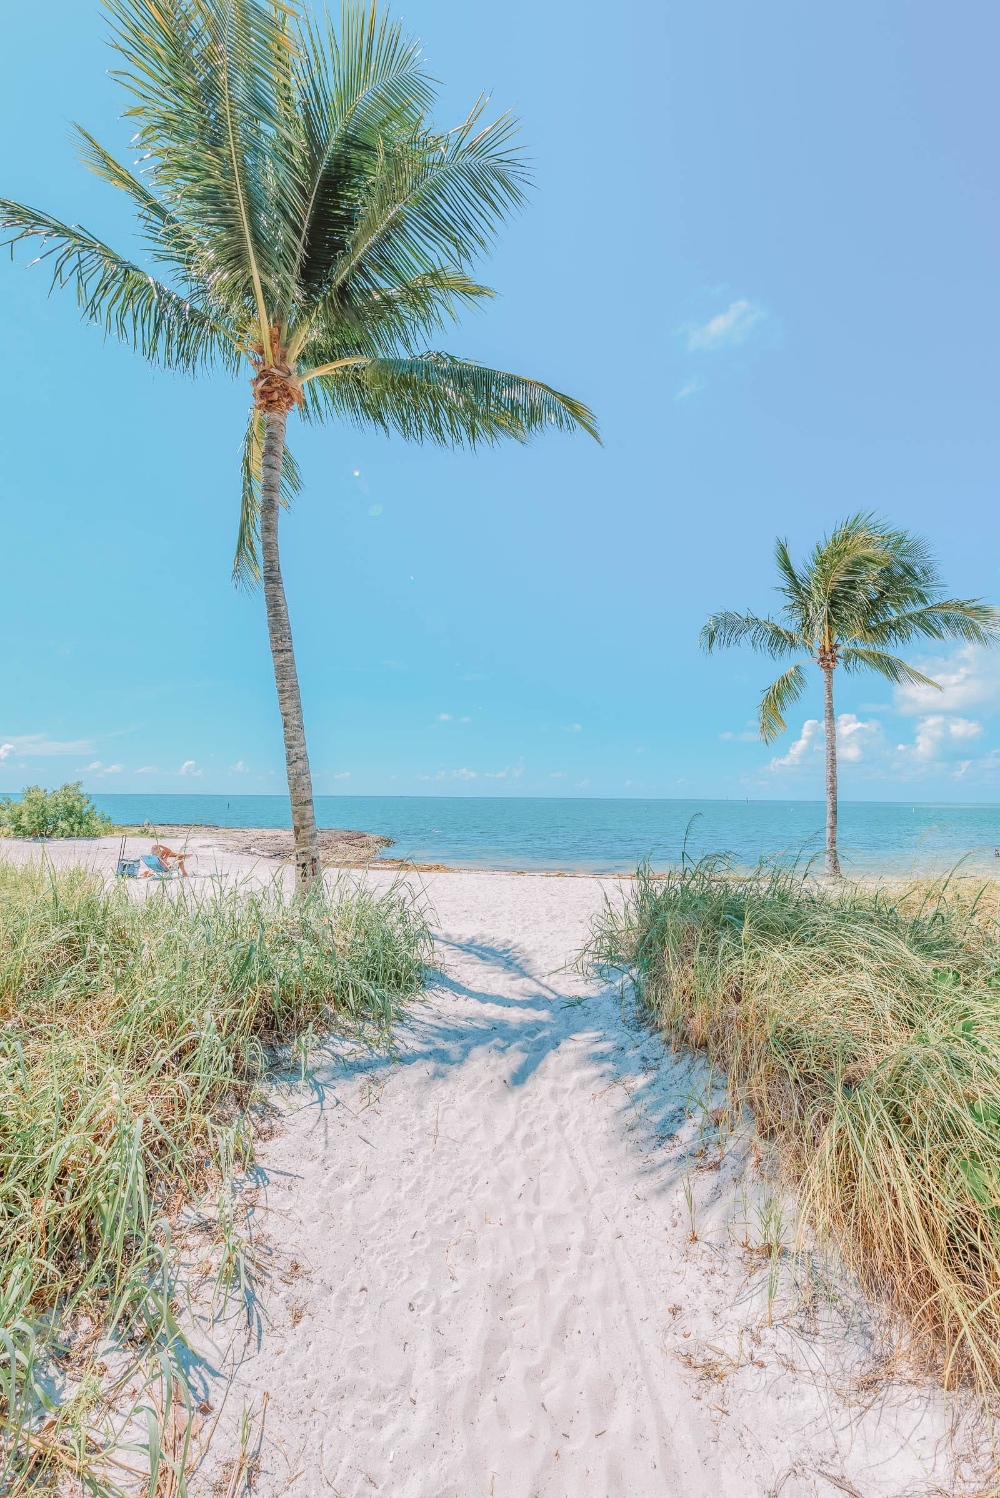 10 Best Place To Visit In Florida 6 Places In Florida Best Places In Florida Cool Places To Visit